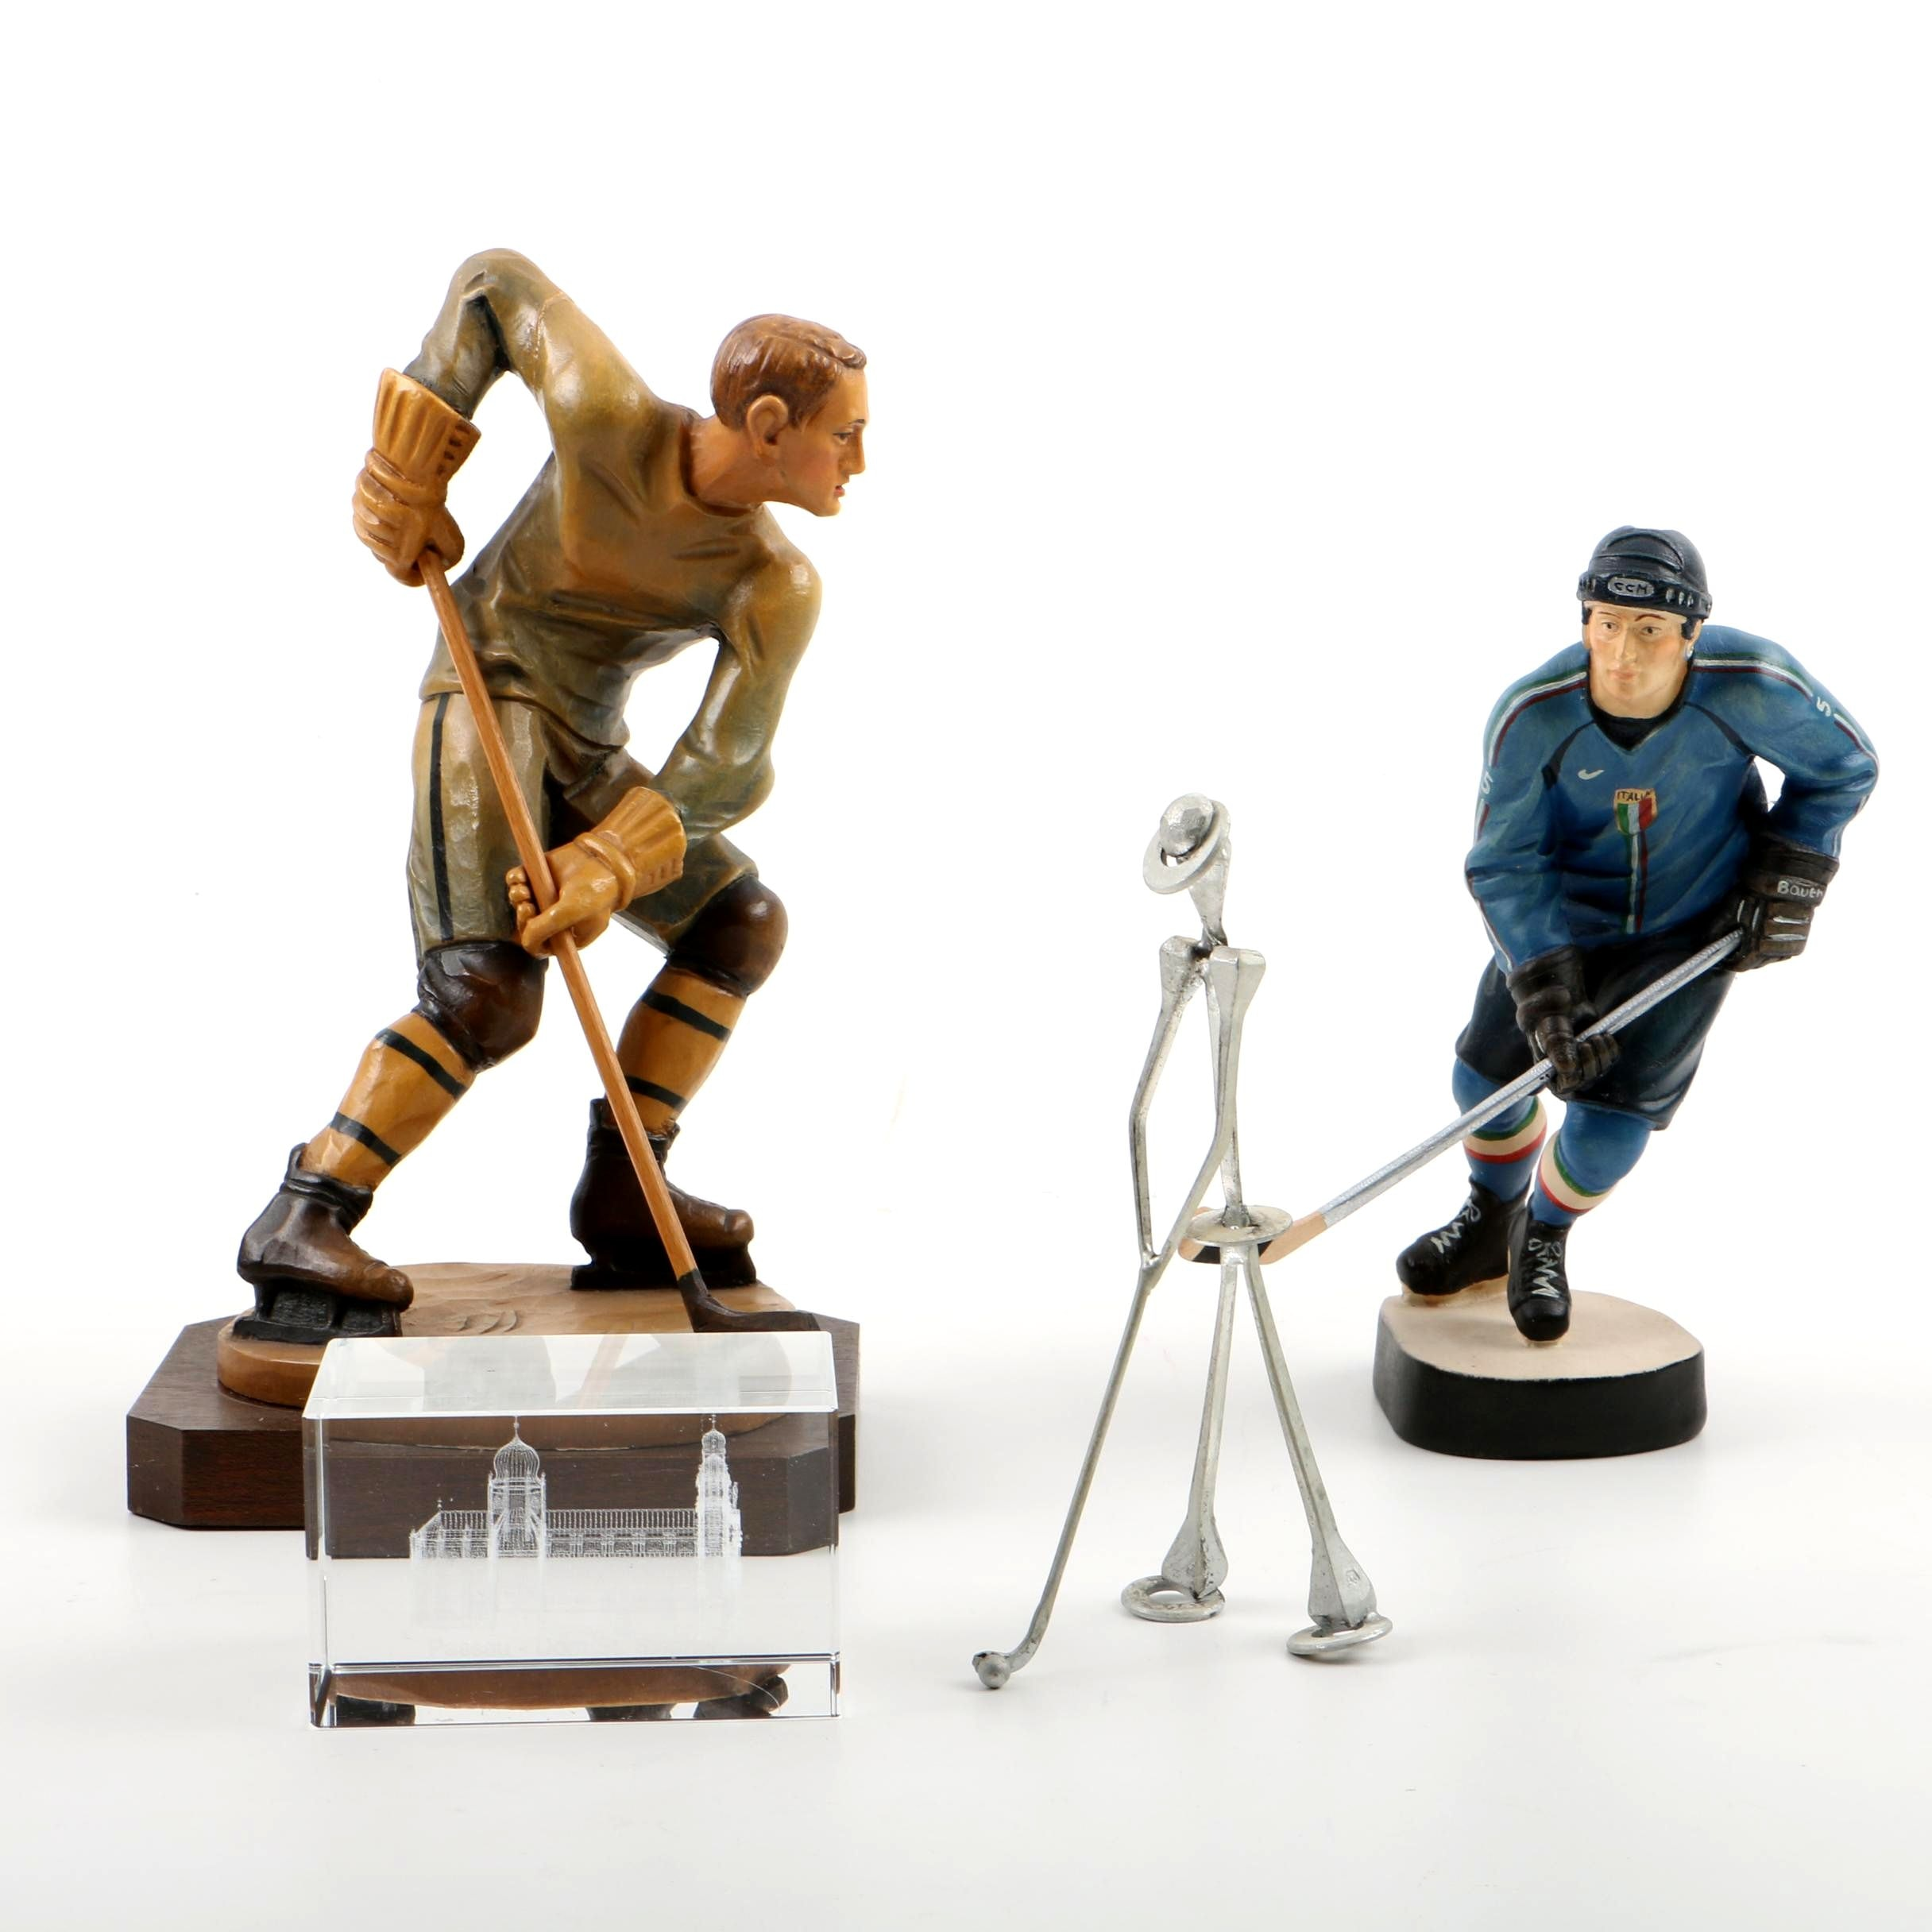 Two Composite Hockey Figurines With a Metal Golfer, and Paperweight of Passau